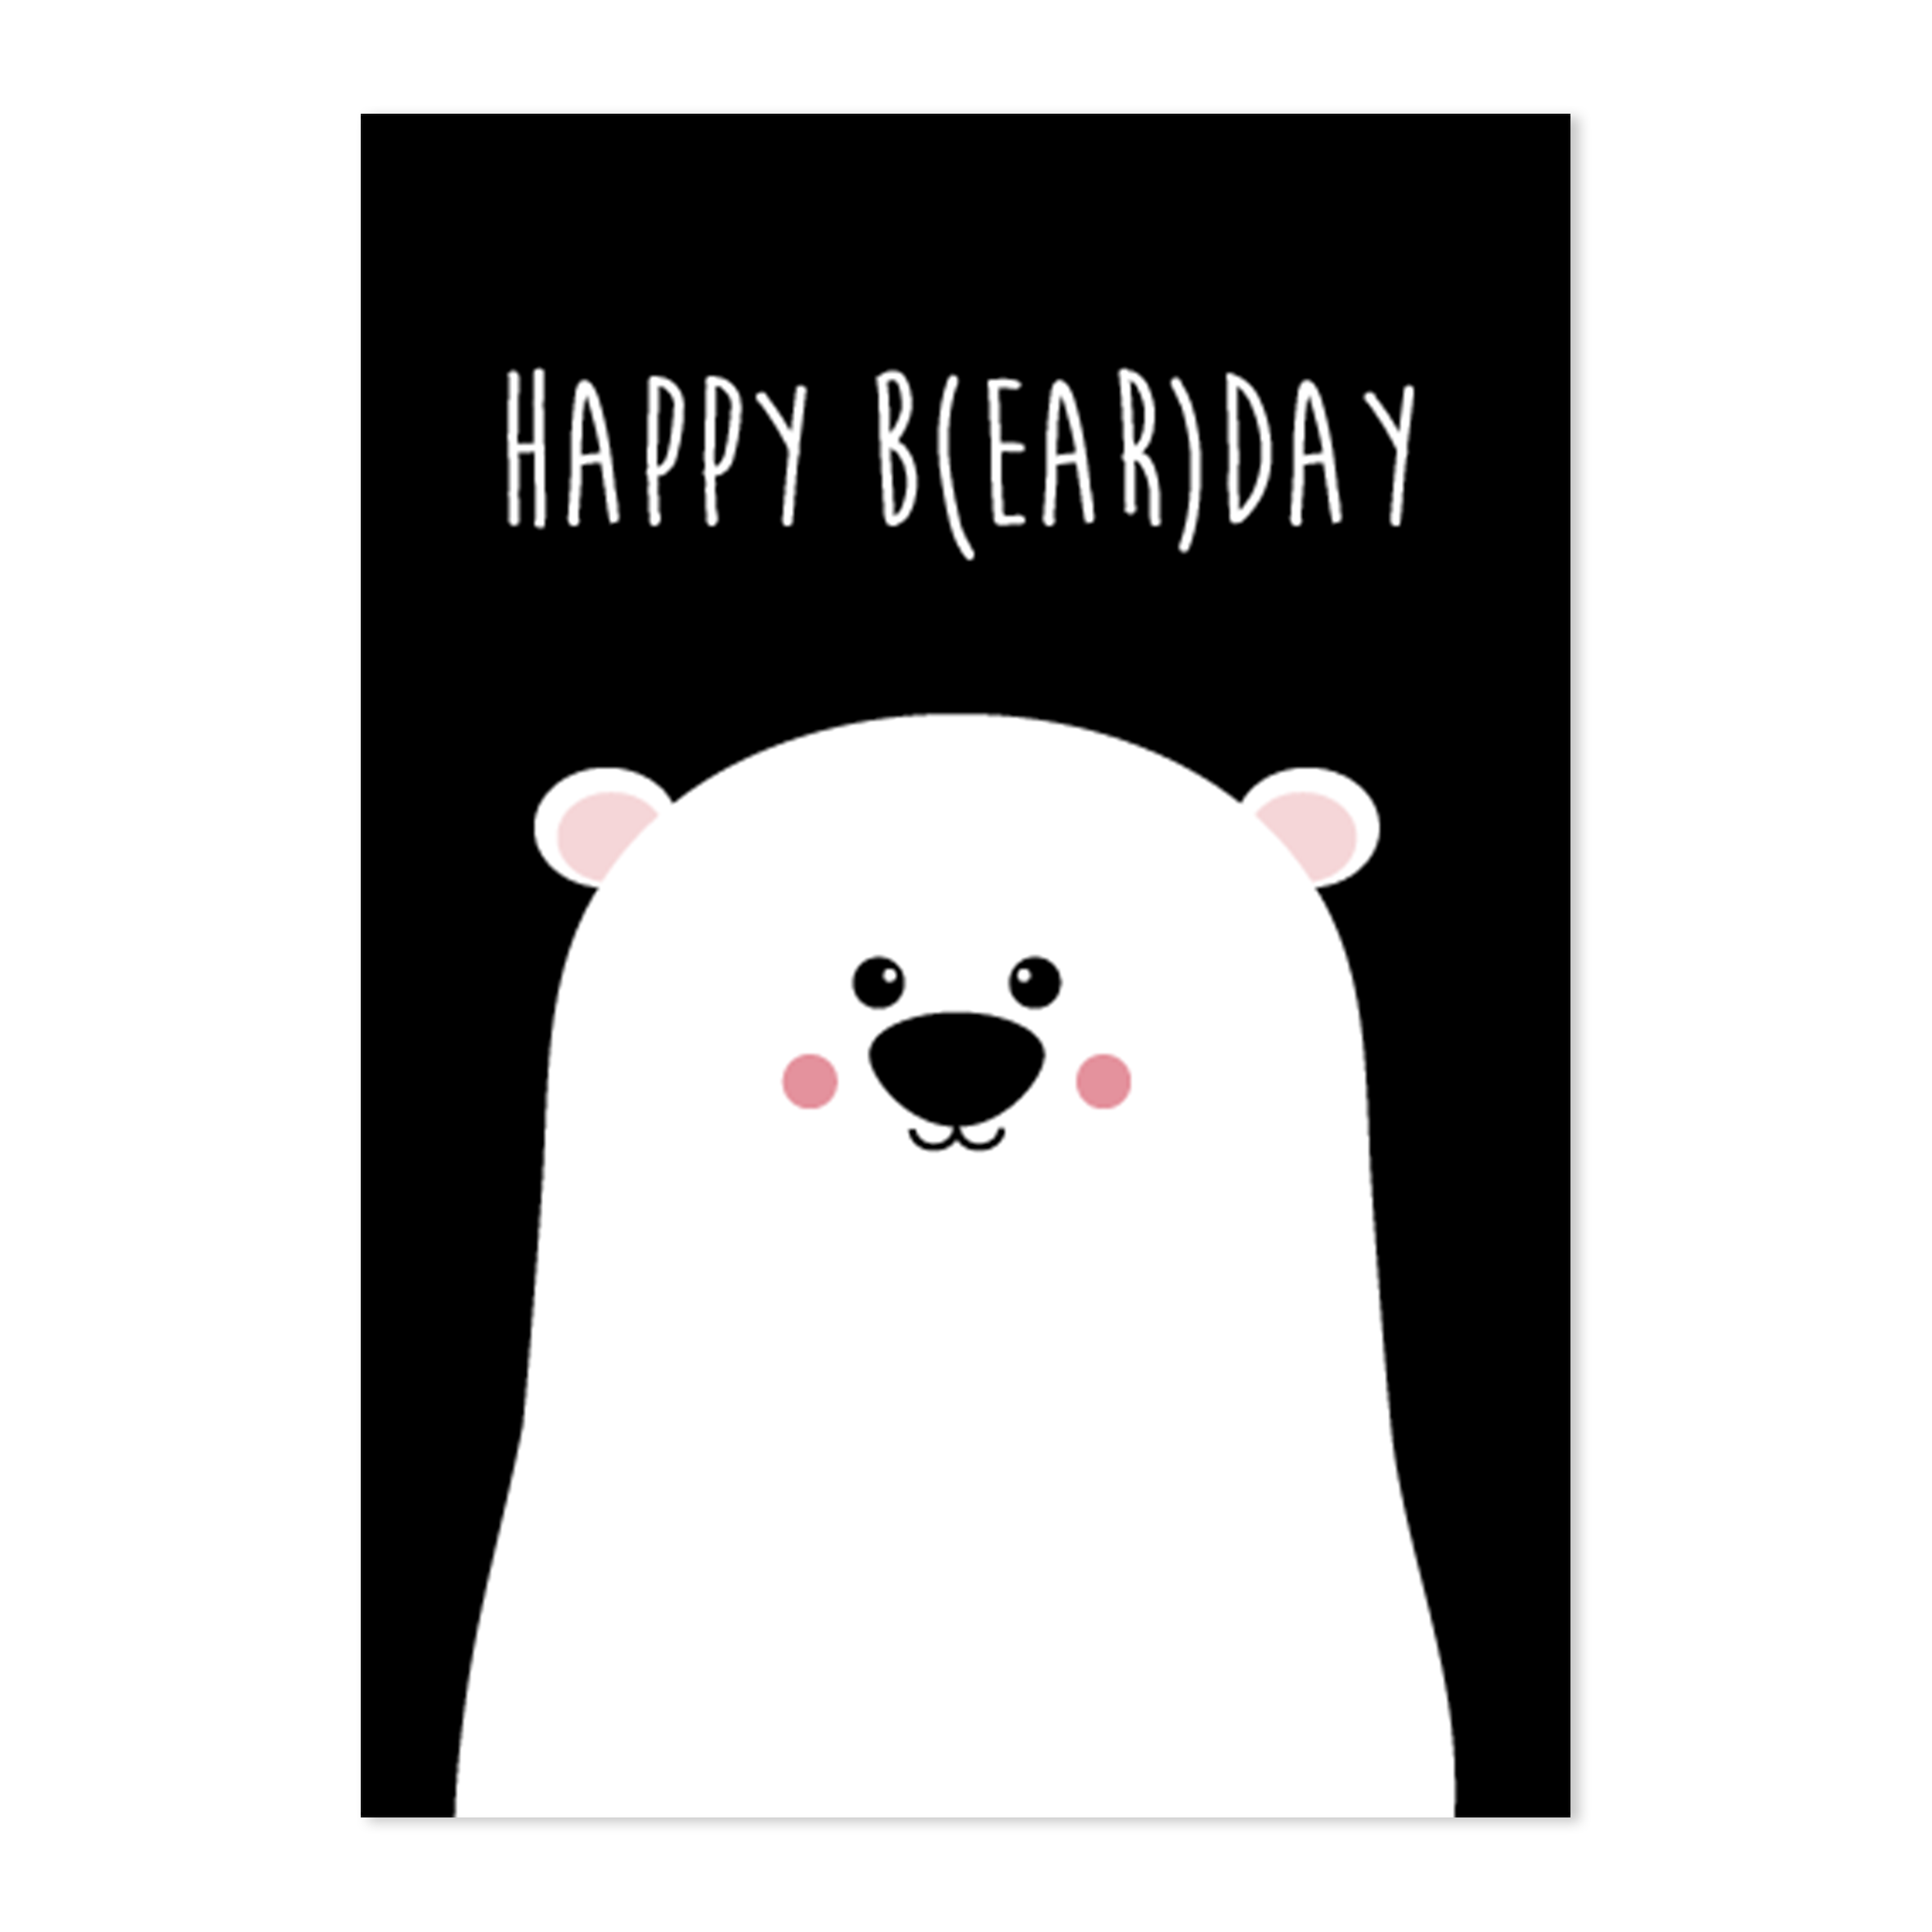 studioinktvis-kaart-happybearday